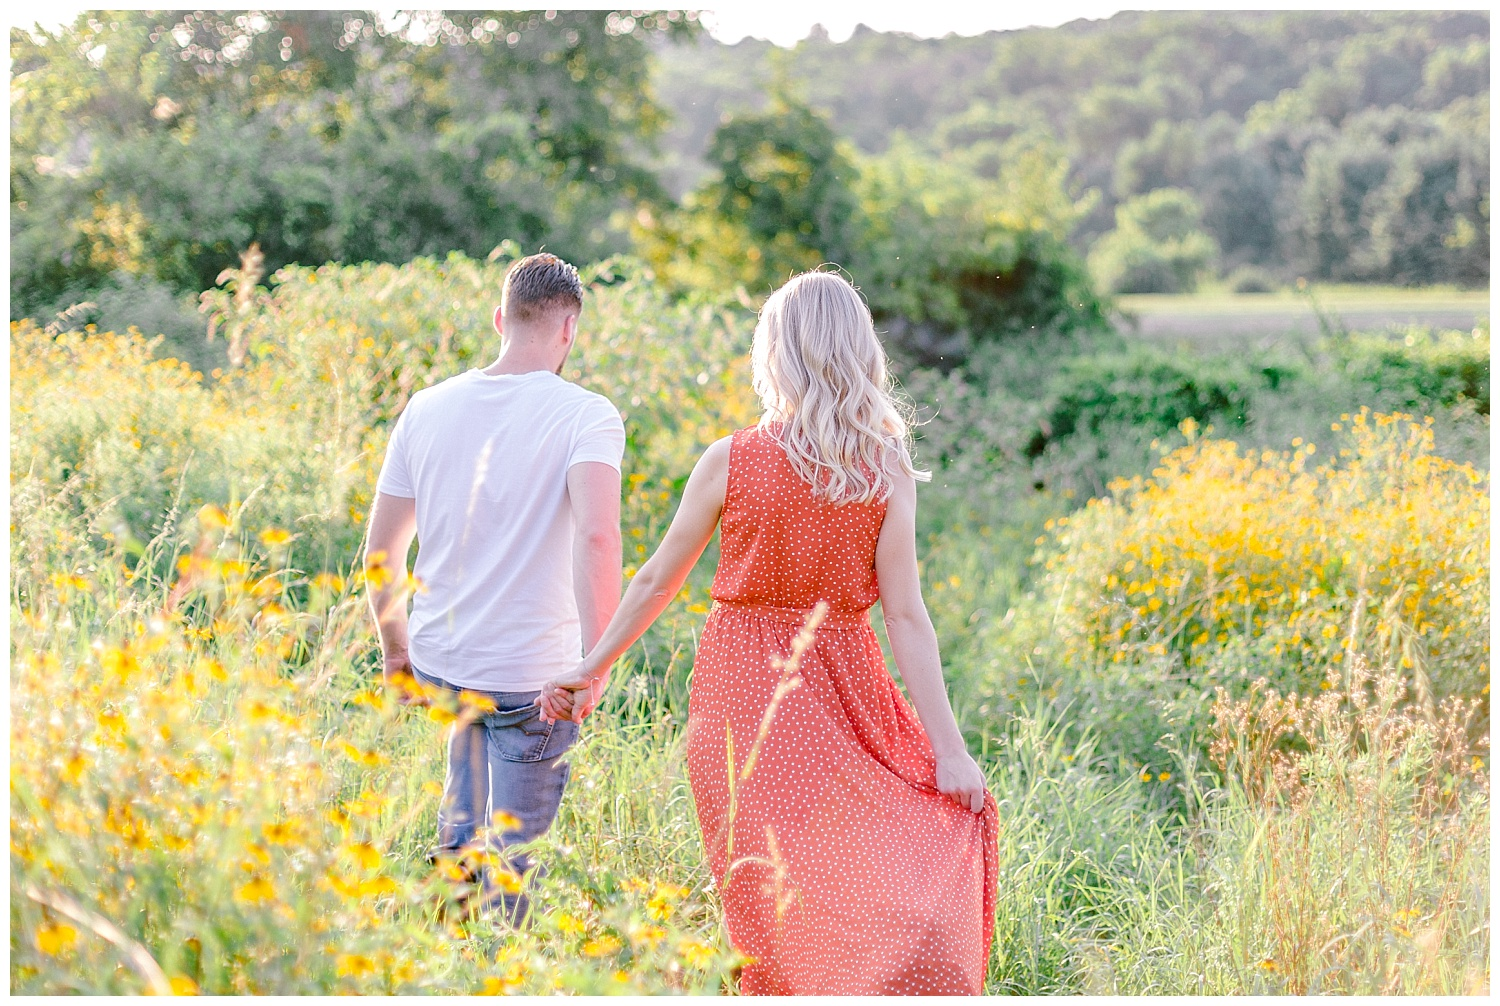 Blue Marsh Lake Reading Pennsylvania flower field golden hour engagement session by PA based wedding and lifestyle photographer Lytle photography_0016.jpg